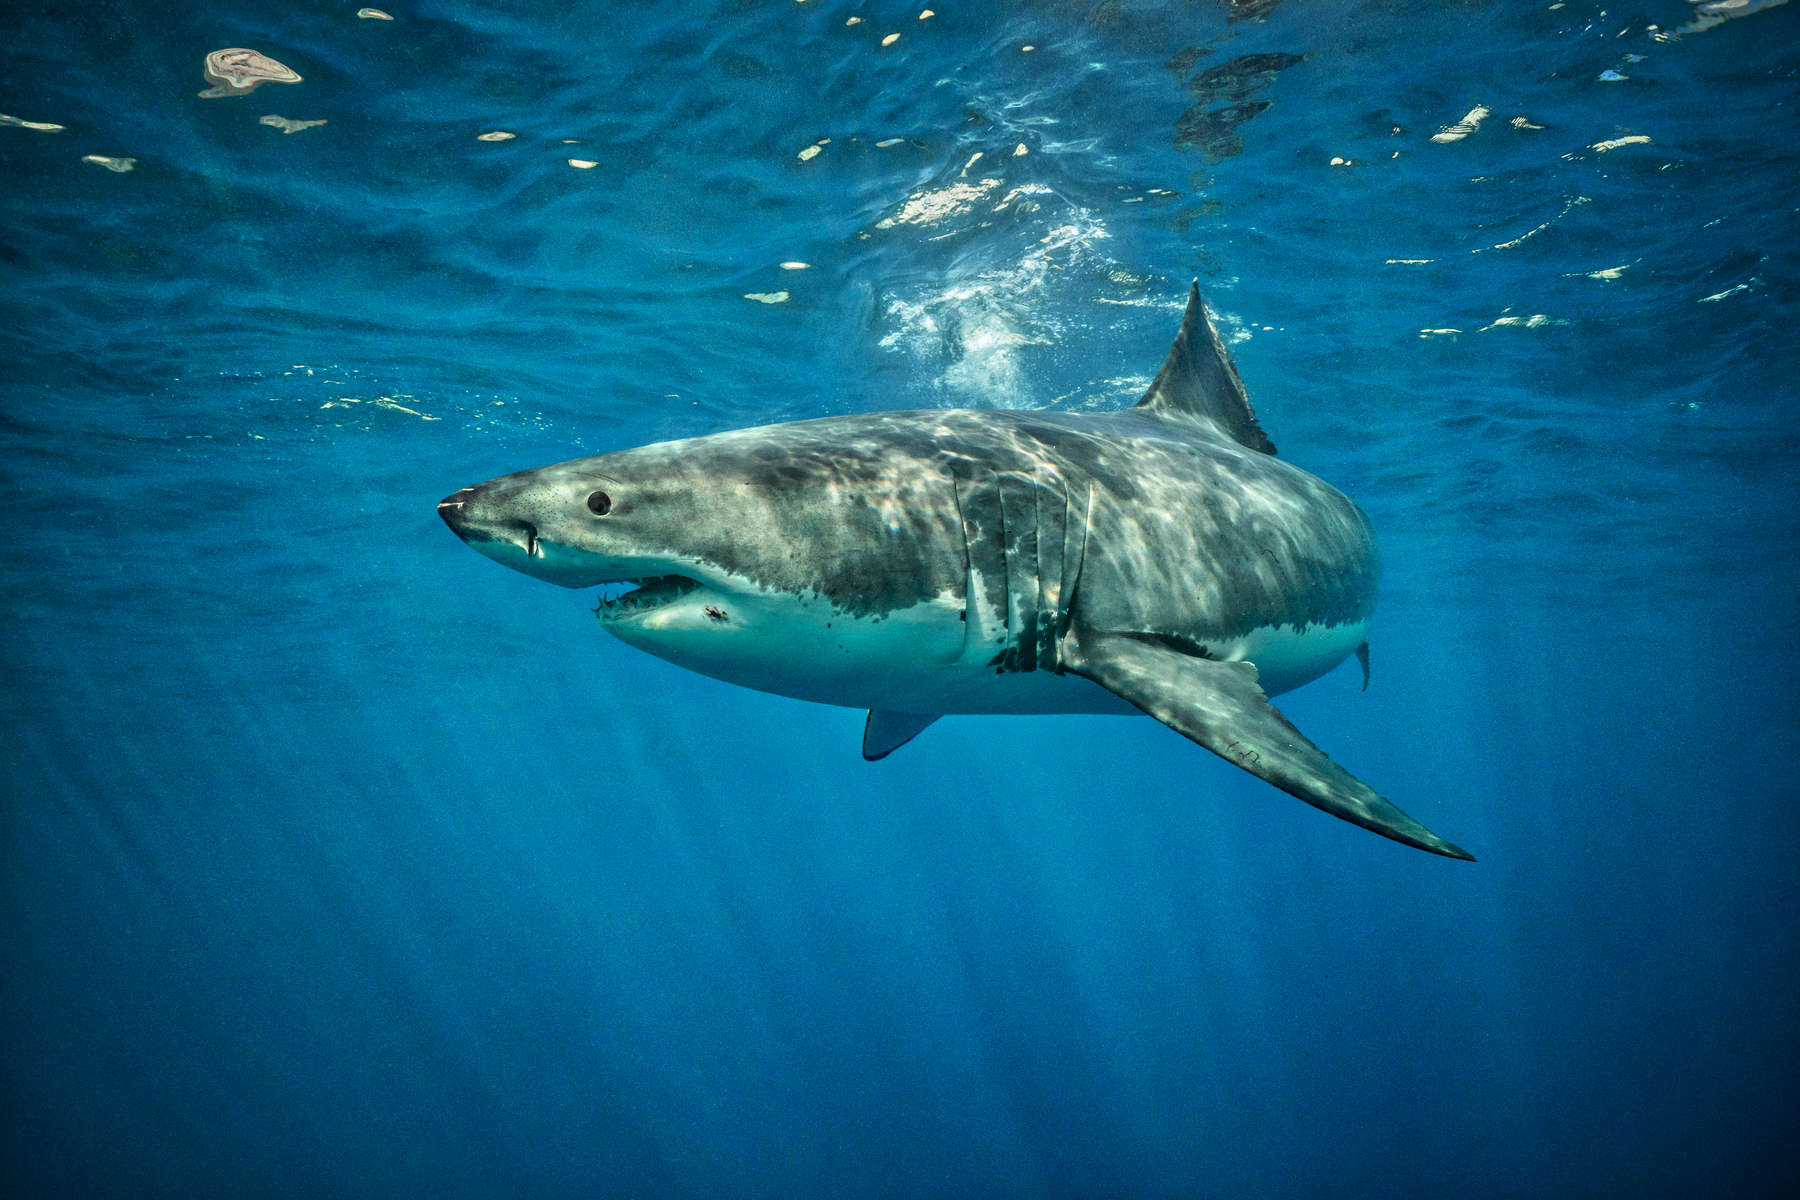 Isla Guadalupe, Mexico - November 12, 2015: A carcharodon carcharias, more commonly and infamously known as a great white shark, swims along the surface waters off the isolated volcanic Mexican Island of Isla Guadalupe. The island, long a destination for fur hunters and sports fishermen has large population of elephant seals, which in turn attracts a seasonal migration of great white sharks. The presence of a population of sharks is so consistent that in recent years the island has become a mecca for shark diving tourism.(Photograph by Benjamin Lowy for The New York Times)